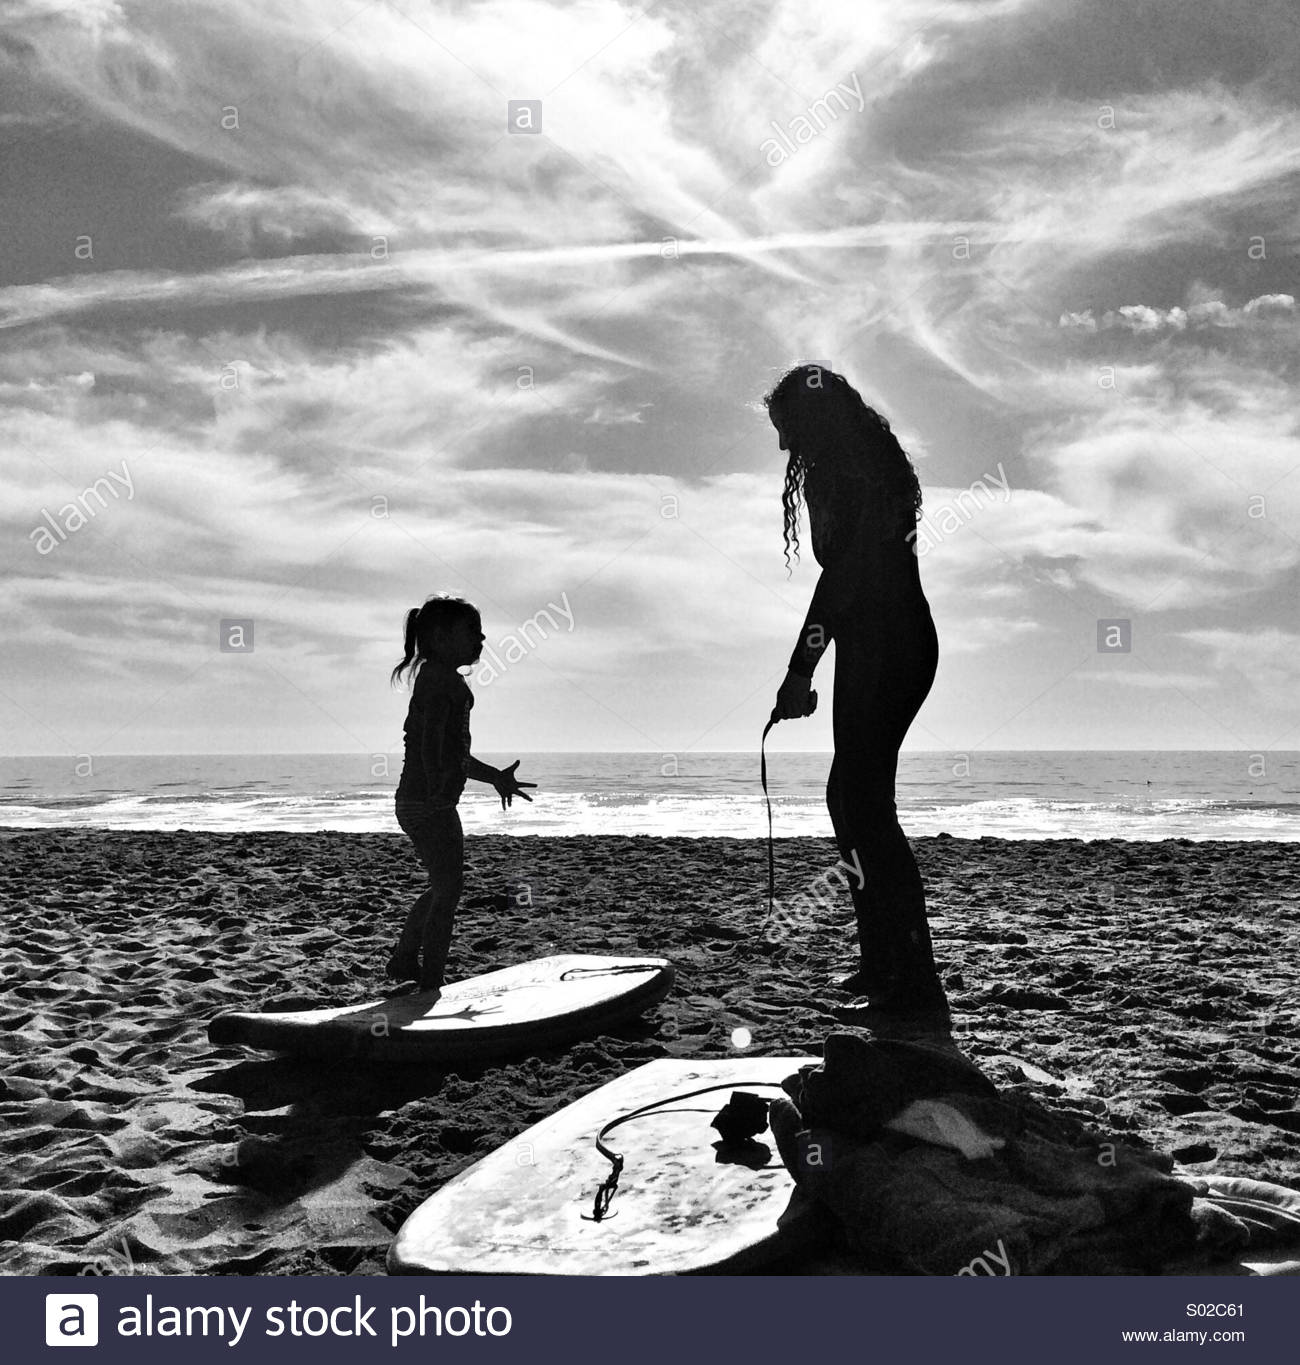 Two Girls On Beach Ready To Boogie Board - Stock Image